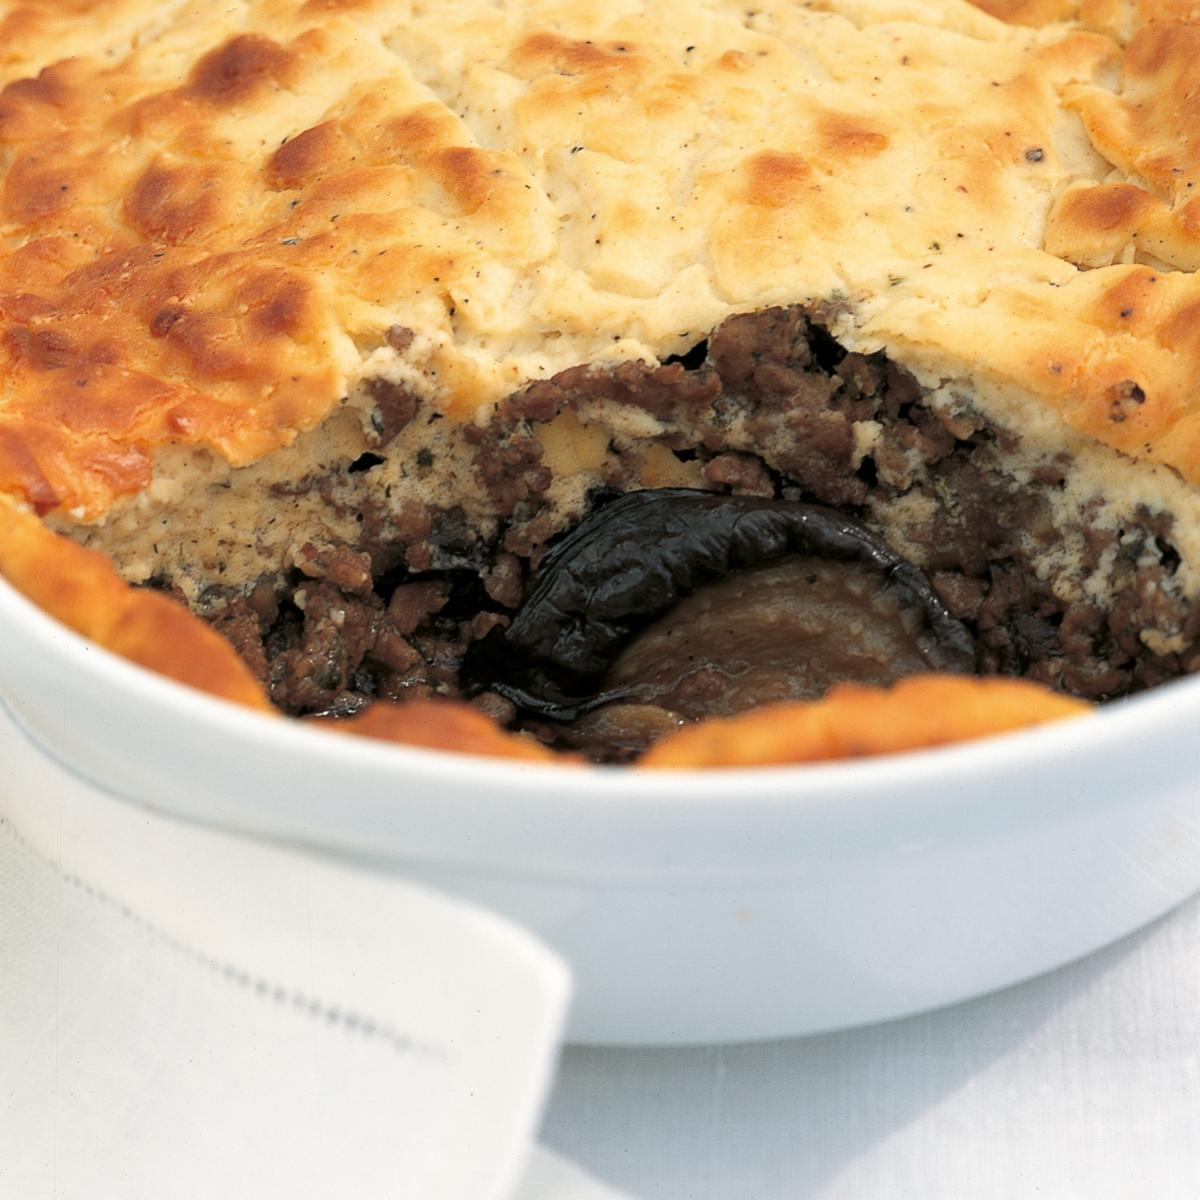 Moussaka Authentic And Traditional Greek Recipe: A Very Quick Moussaka